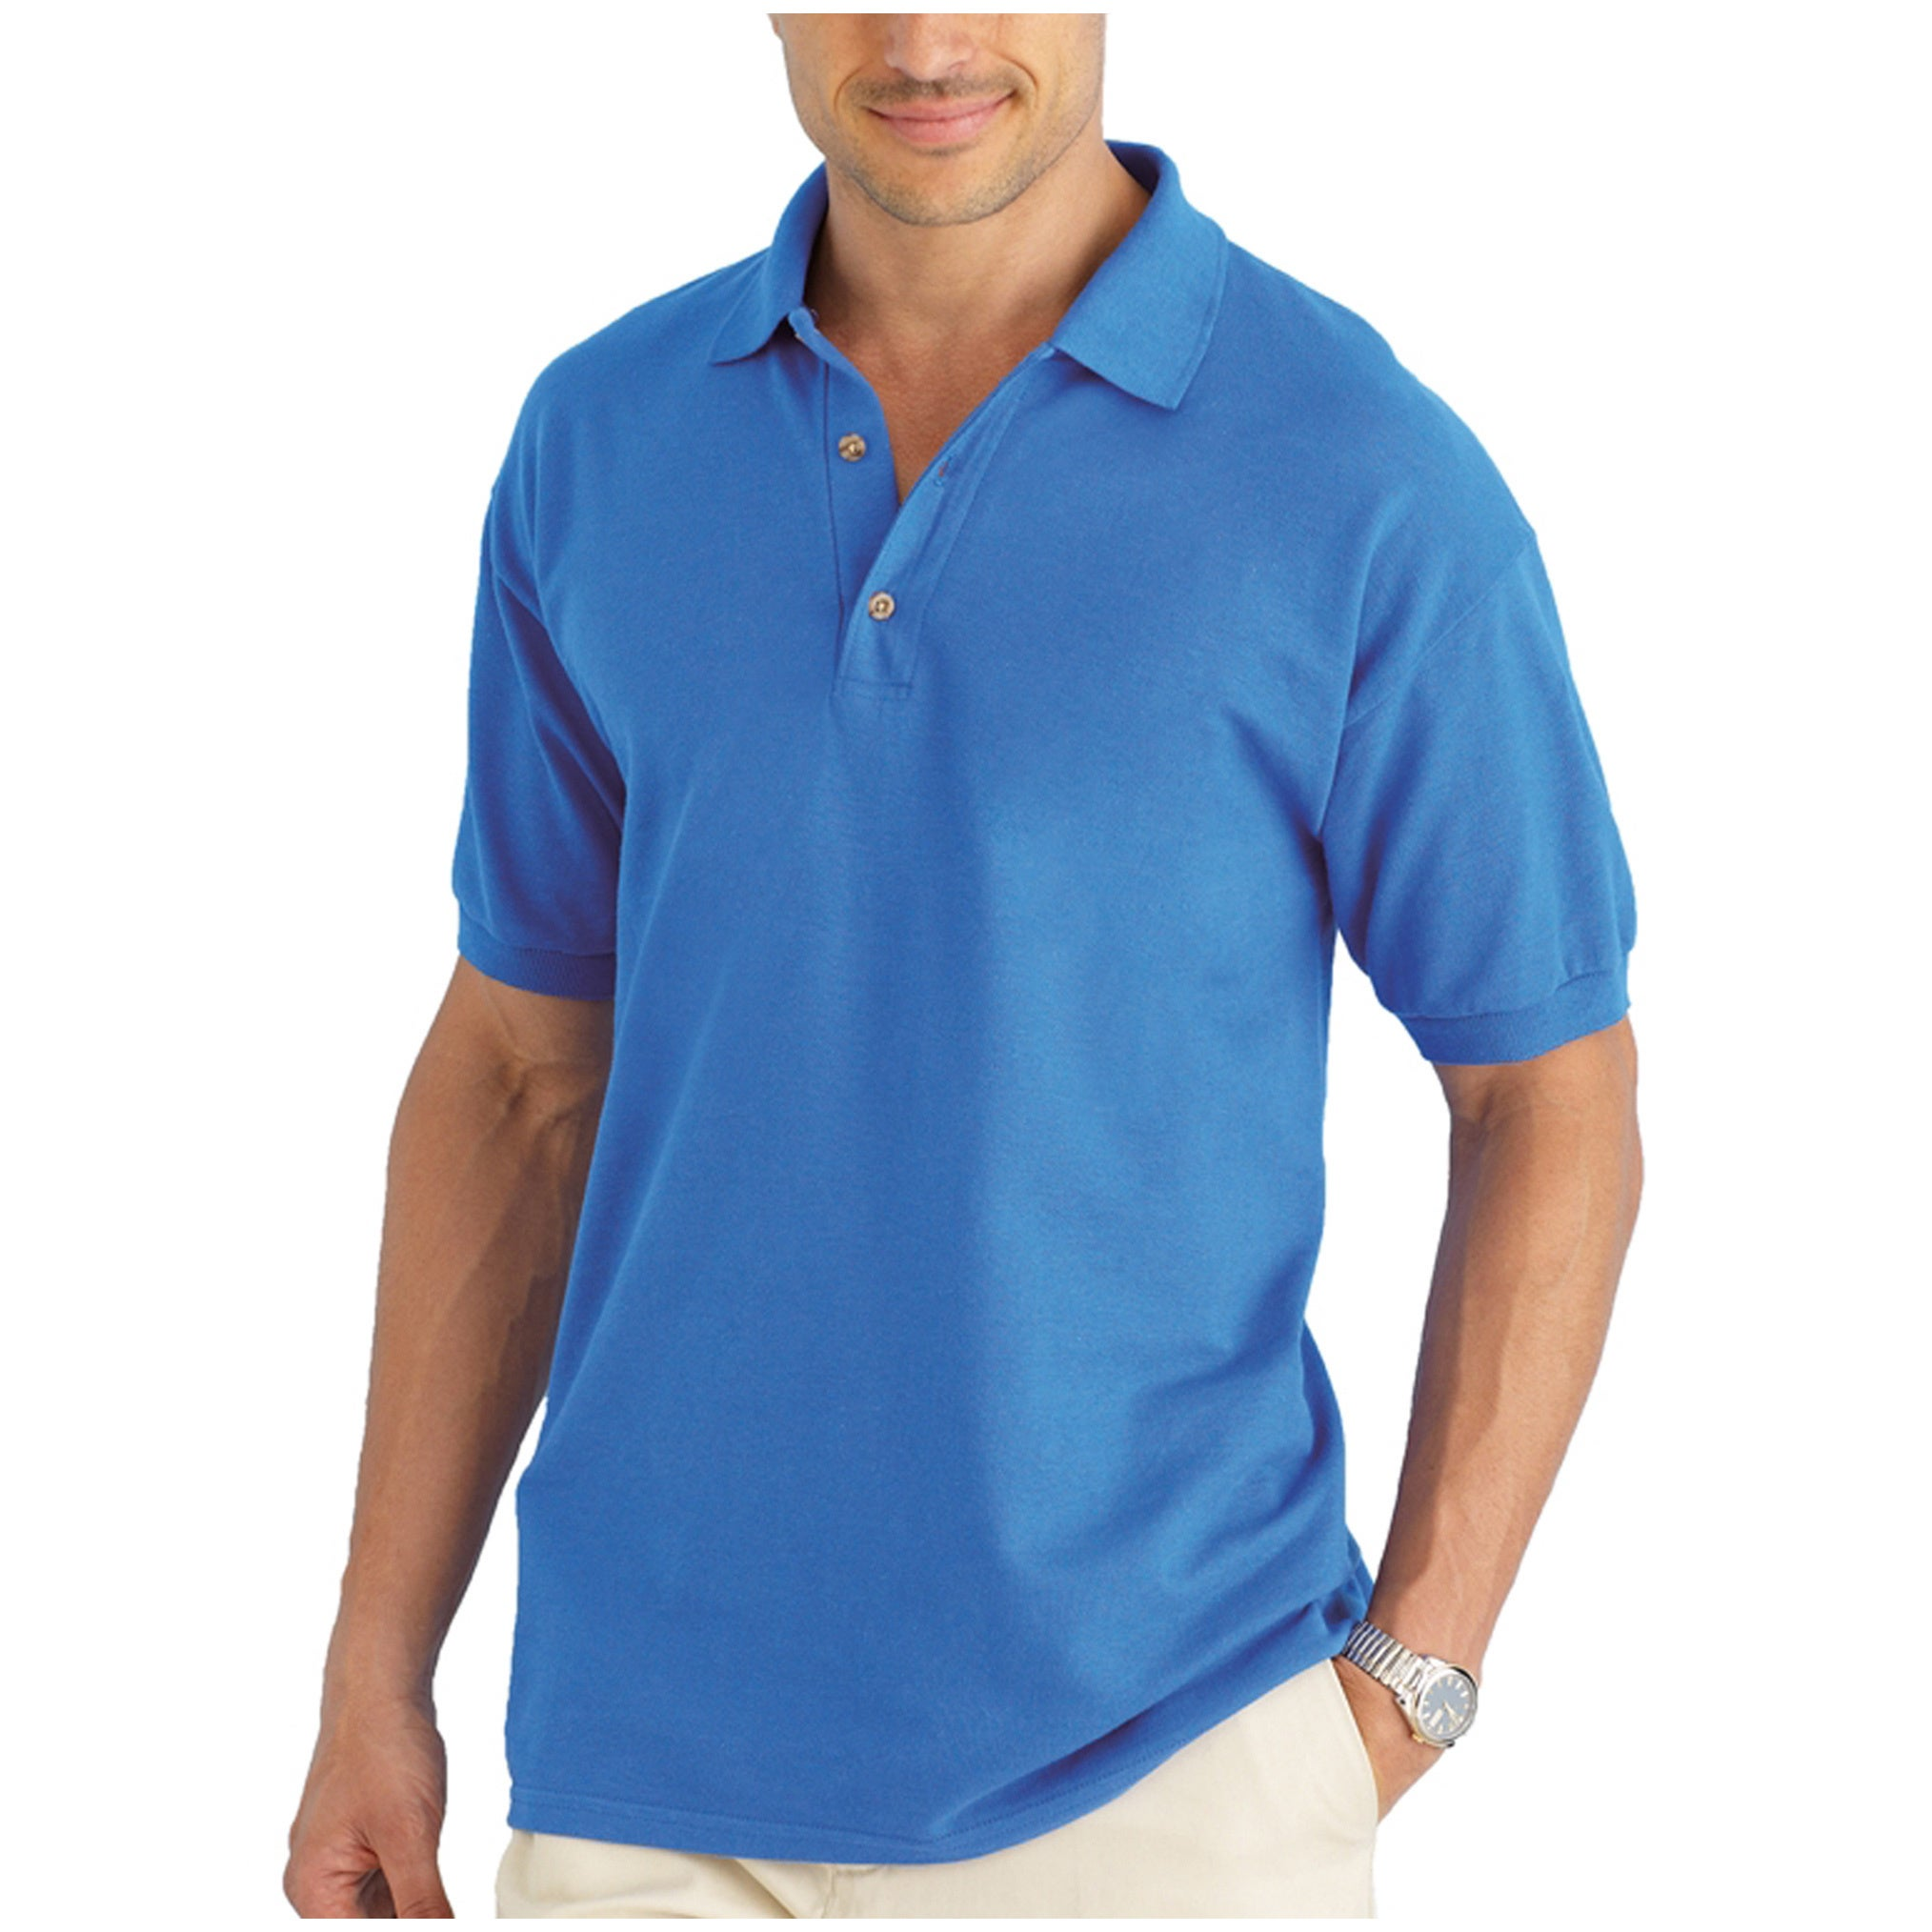 Shirts   Find Great Men\'s Clothing Deals Shopping at Overstock.com